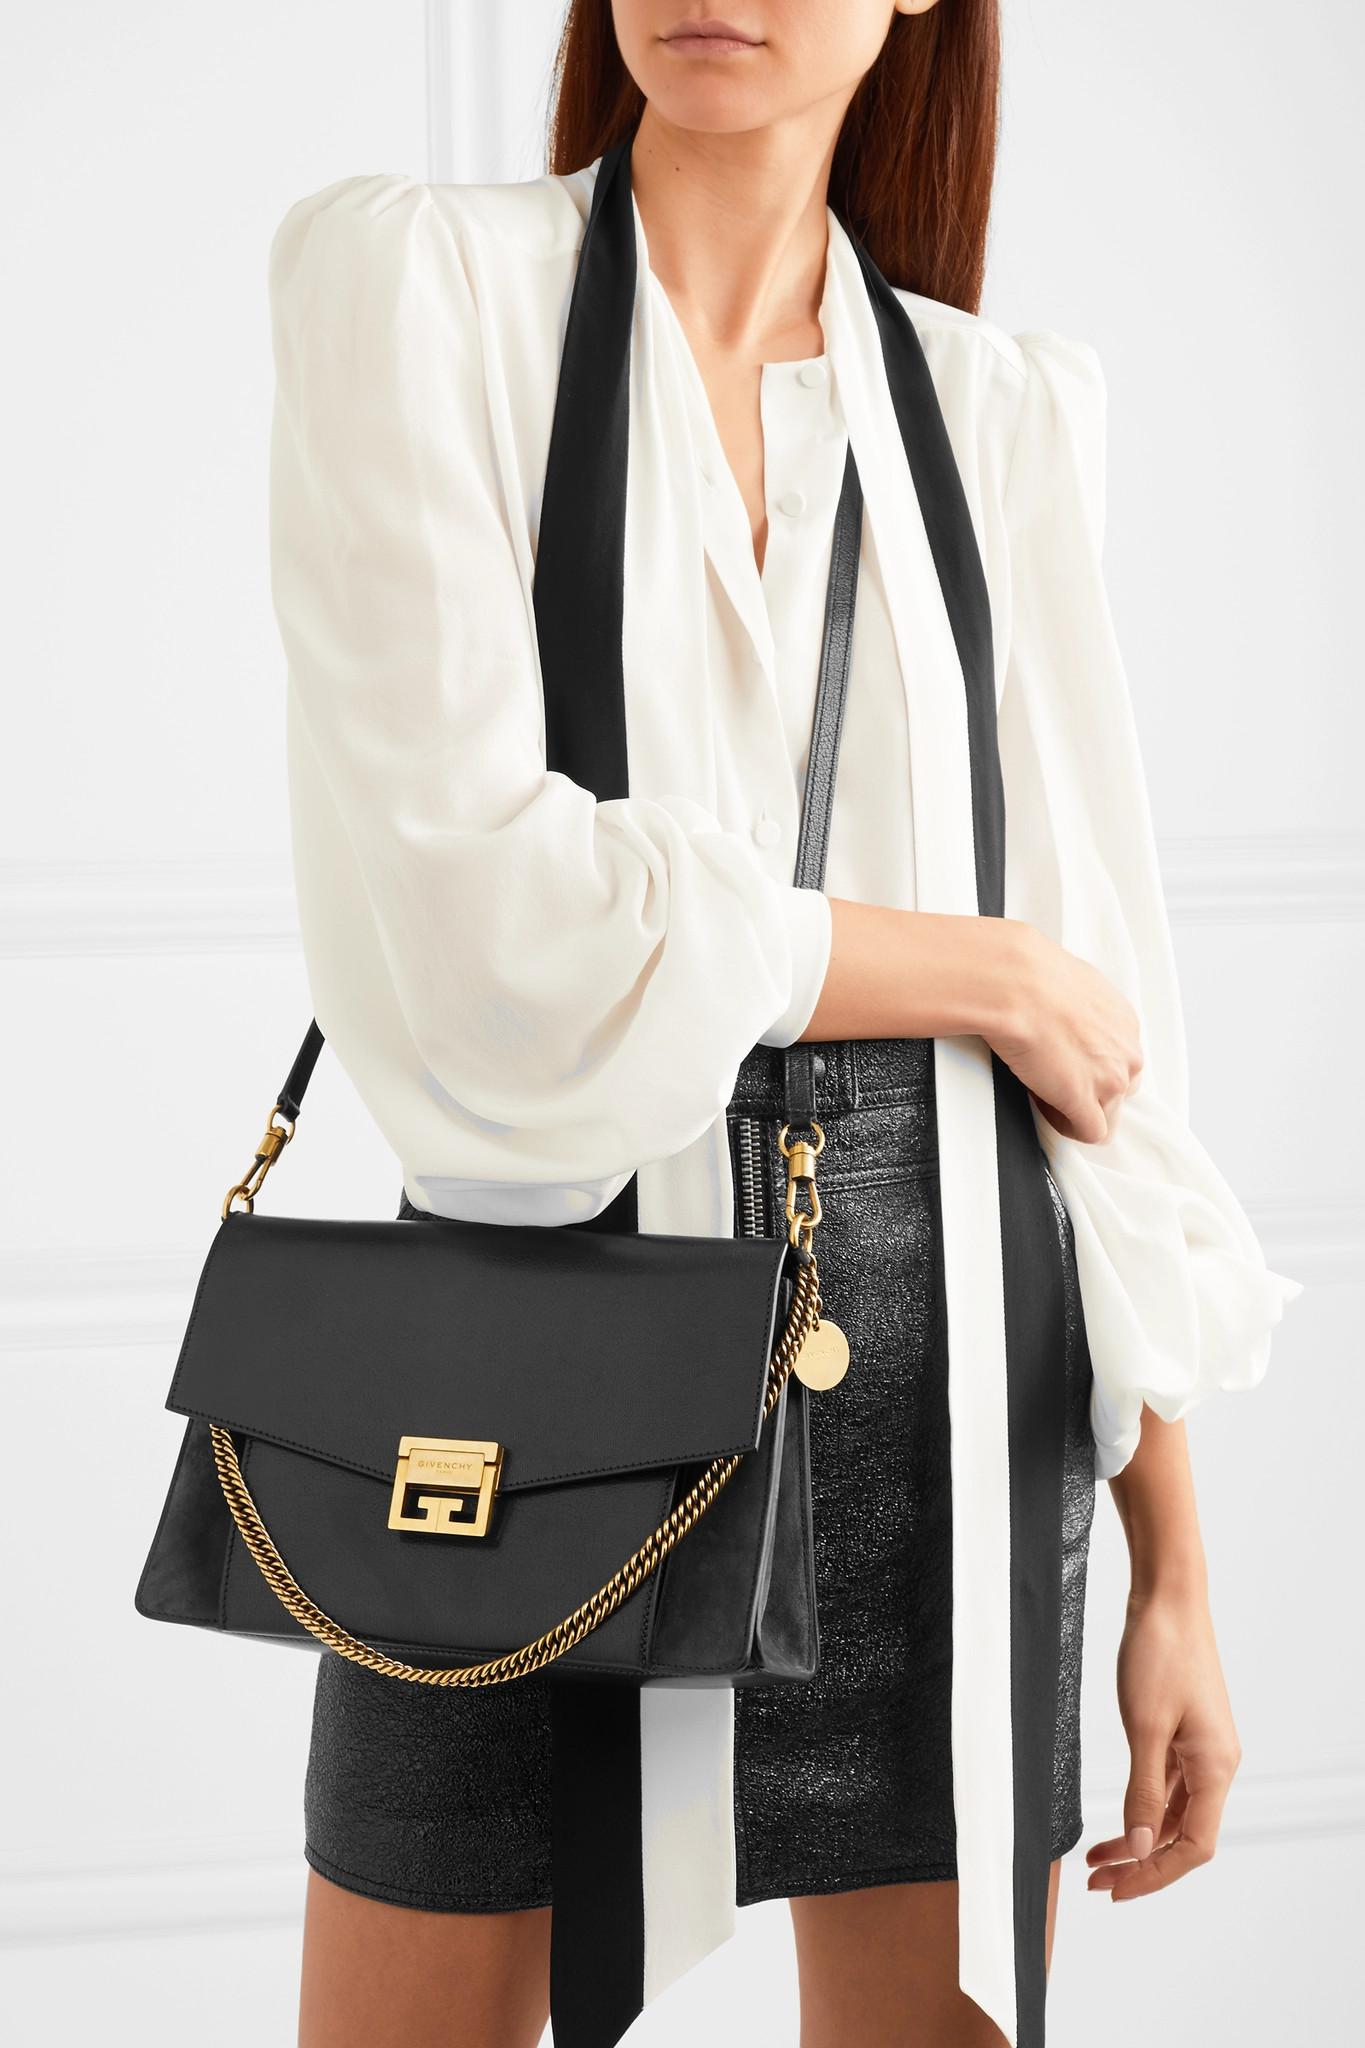 Lyst - Givenchy Gv3 Medium Leather And Suede Shoulder Bag in Black ad58b71eeecb8